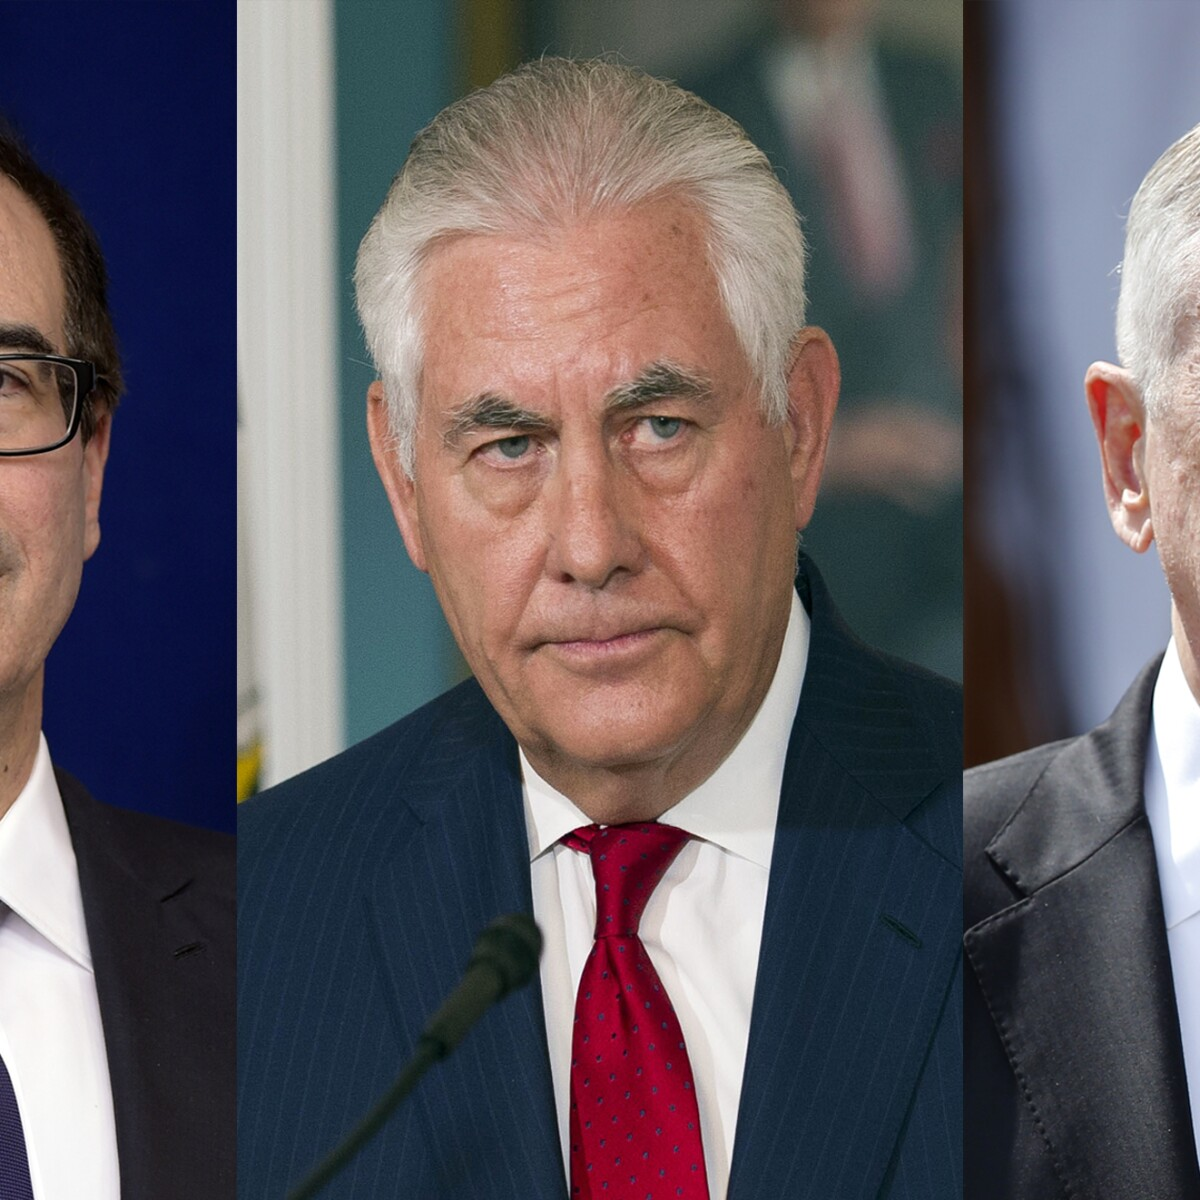 Tillerson, Mattis, Mnuchin forge 'suicide pact' in the event Trump wants one of them gone: Report